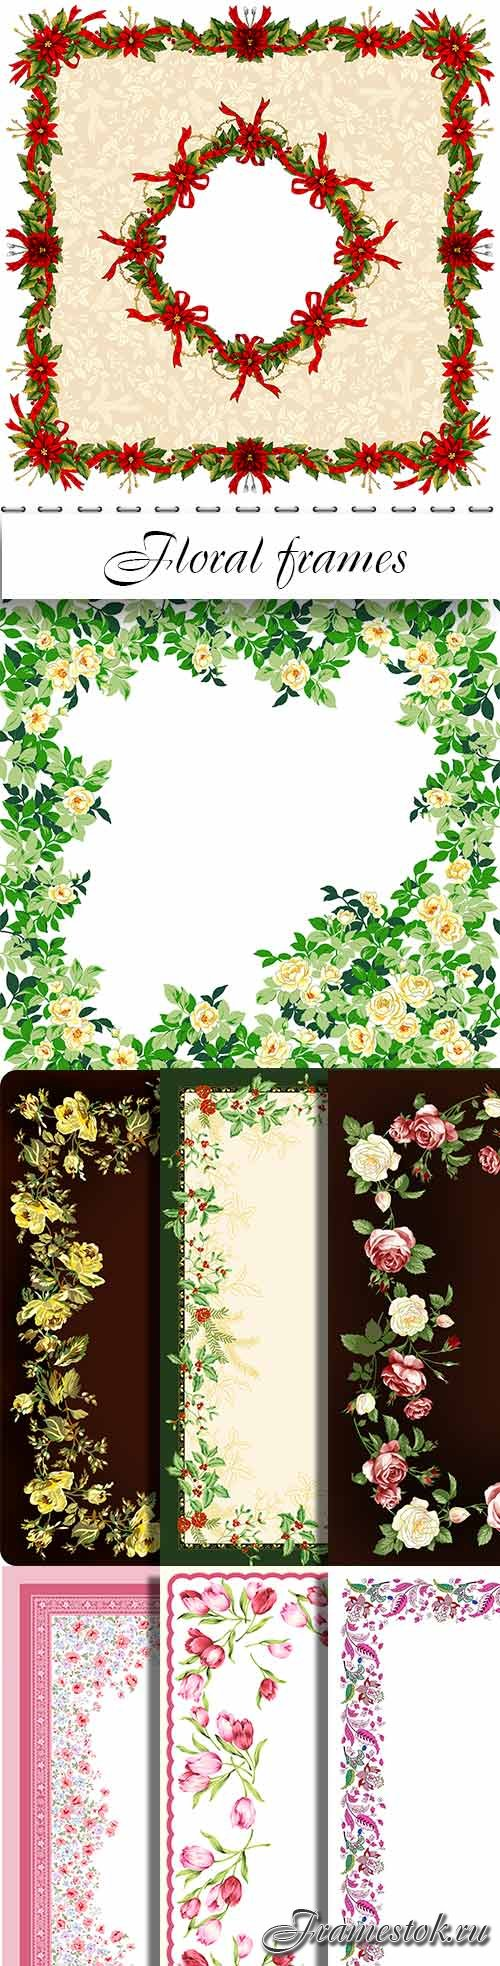 PSD frame flower ornament